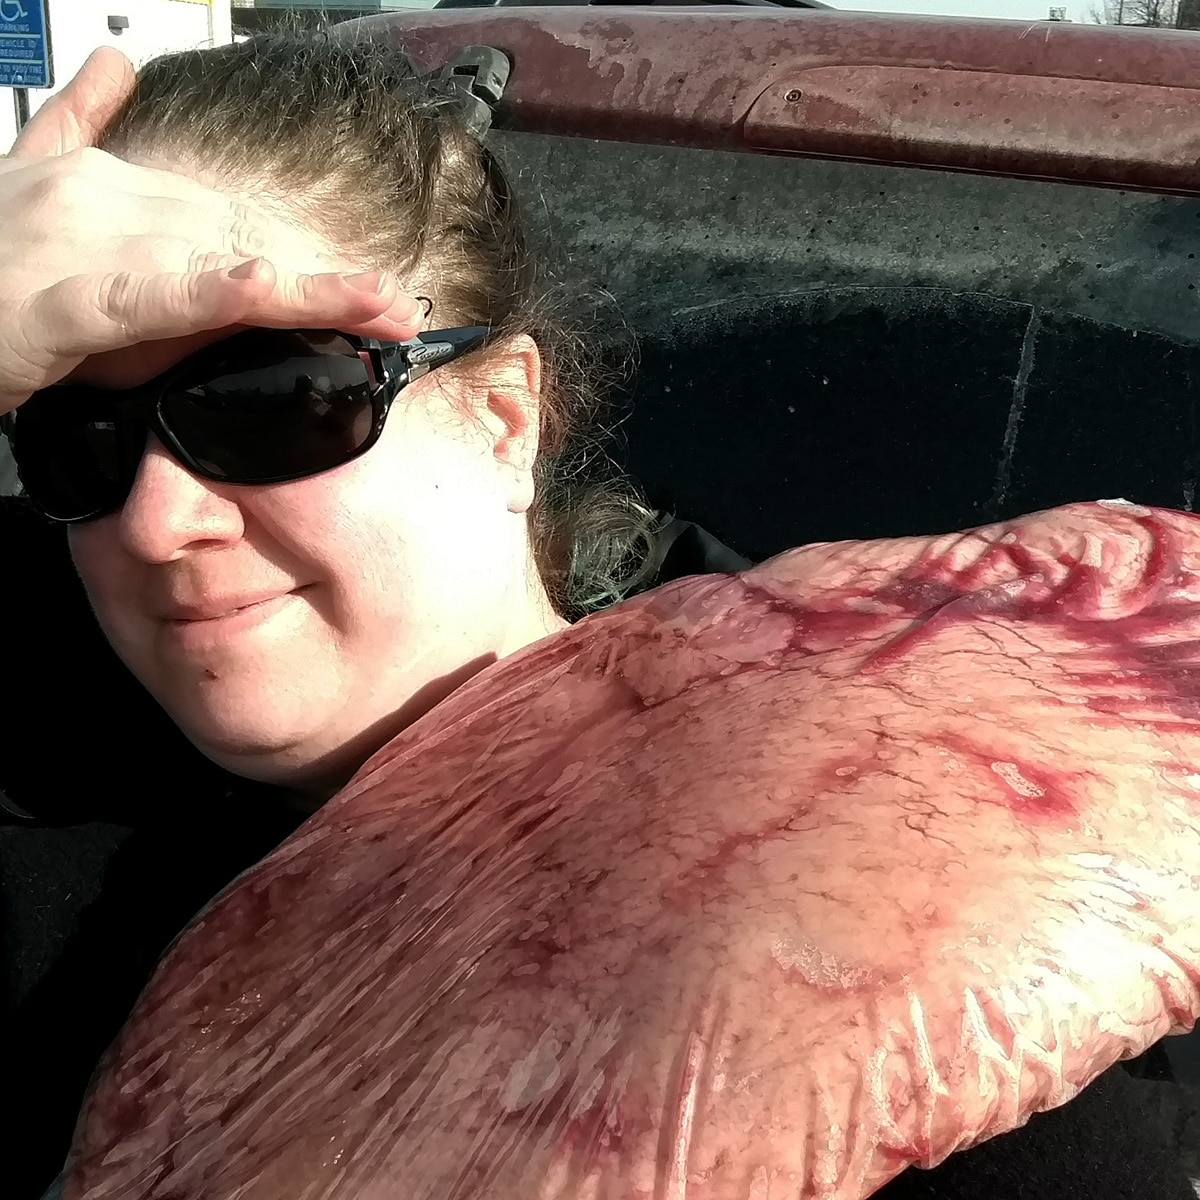 The author, wearing sunglasses, is taking a selfie with a large slab of bagged meat slung over her shoulder.